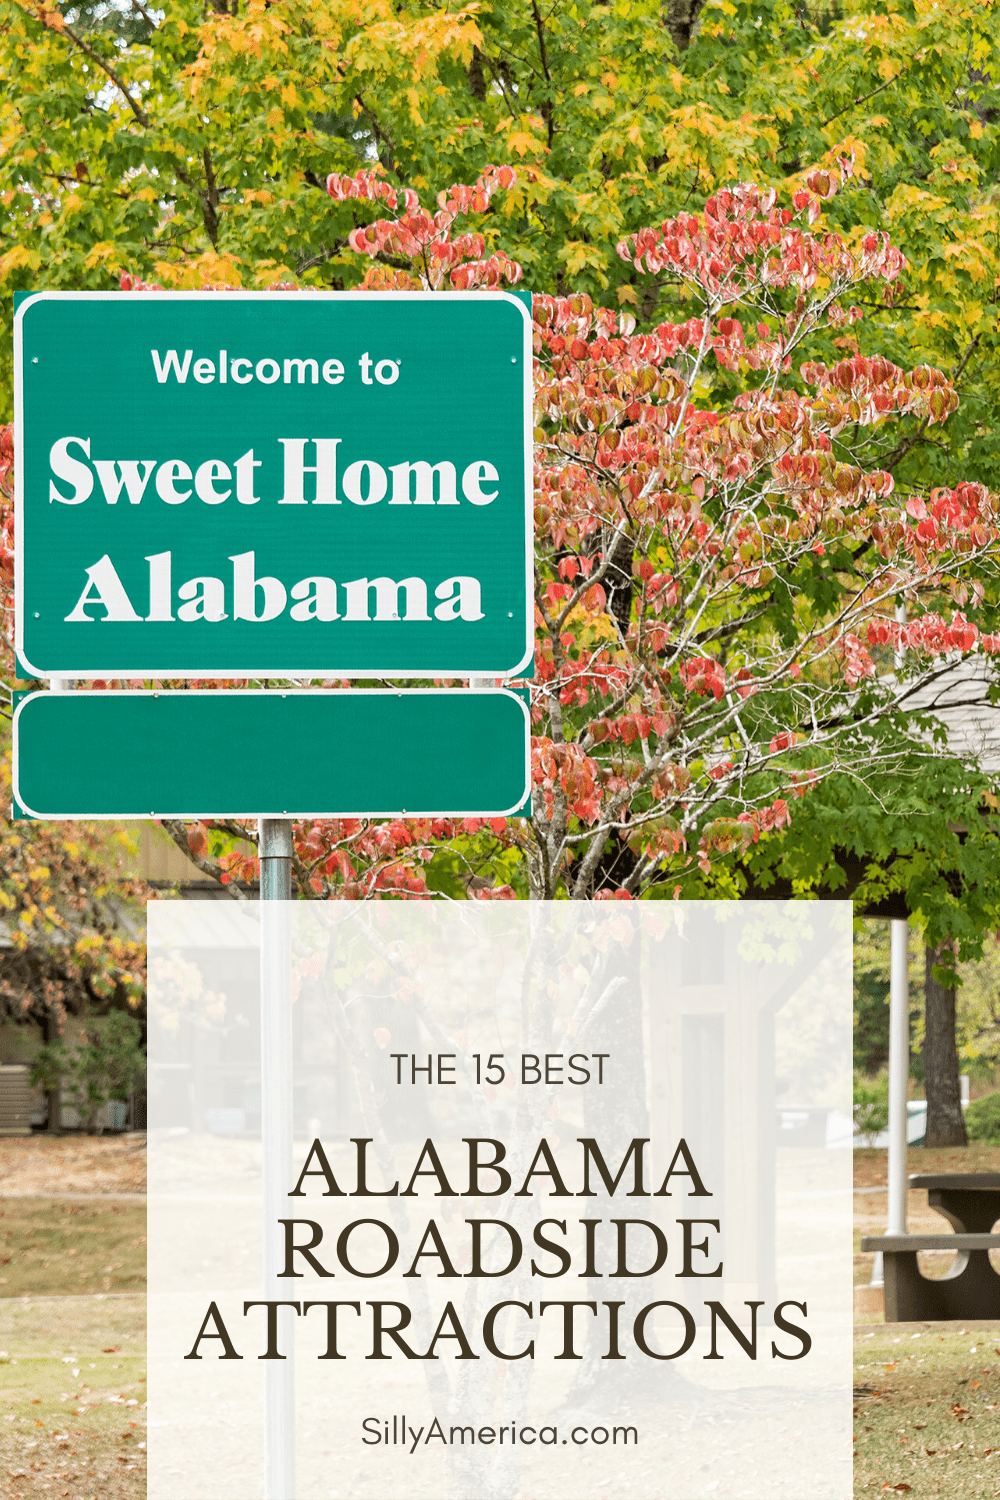 The best Alabama roadside attractions to visit on an Alabama road trip. Add these roadside oddities to your travel bucket list, itinerary, or route map! These places to visit in Alabama are fun road trip stops for kids or adults! #Alabama #AlabamaRoadTrip #AlabamaRoadsideAttractions #RoadsideAttractions #RoadsideAttraction #PlacesToVisitInAlabama #AlabamaRoadTripIdeas #RoadTrip #RoadTrips #AlabamaRoadTripItinerary #WeirdRoadsideAttractions